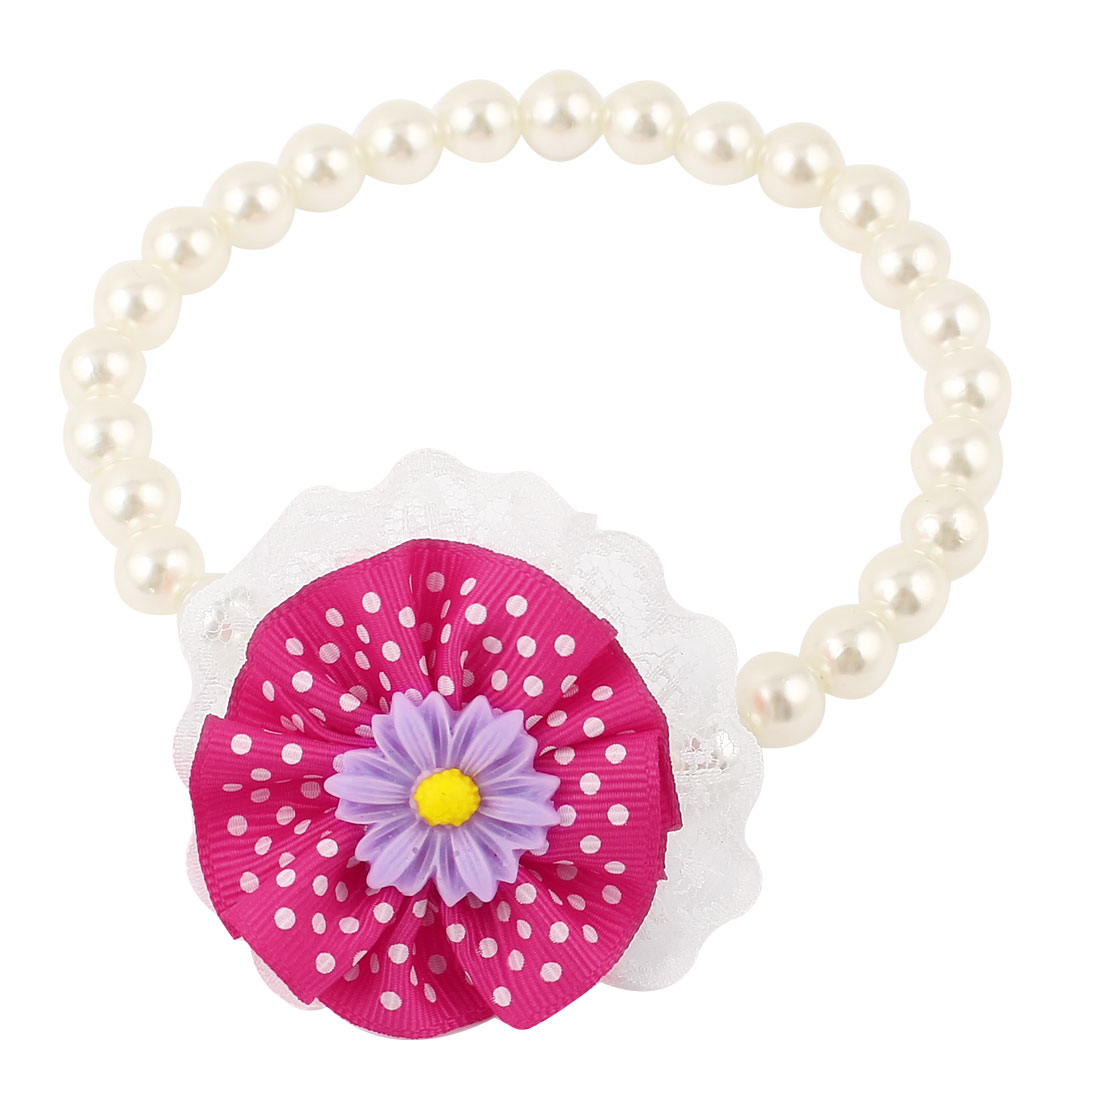 Lace Fuchsia Flower Accent Pet Dog Plastic Beads Pearls Collar Necklace White S